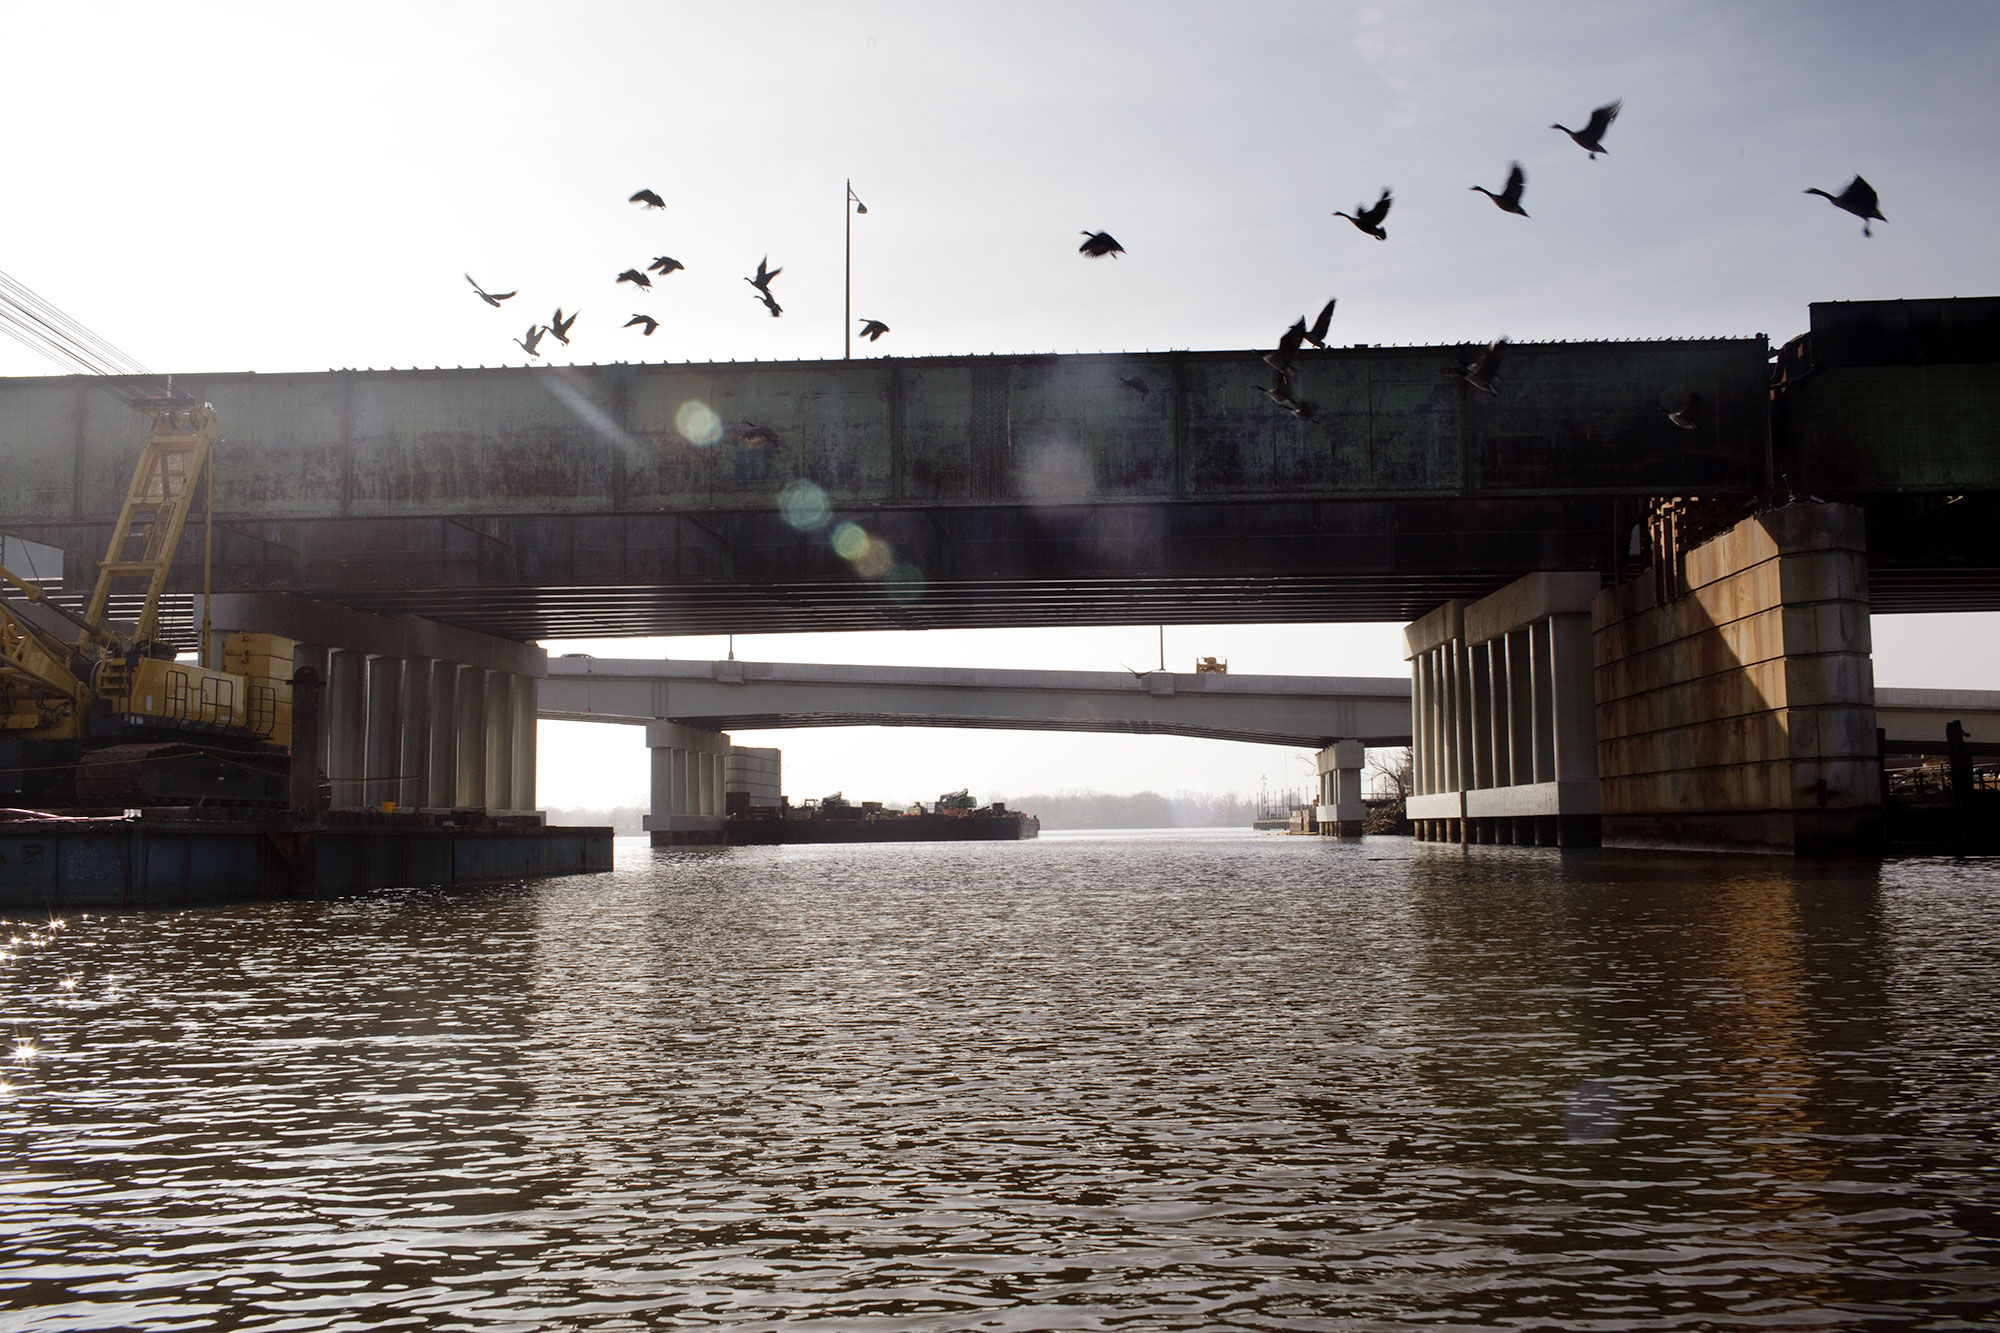 Birds flock past the 11th street bridge, which crosses the Anacostia River, connecting Capitol Hill with the historic Anacostia neighborhood. The pillars of the old 11th street bridge are the proposed site of a future elevated park that's estimated to cost 45 million dollars.